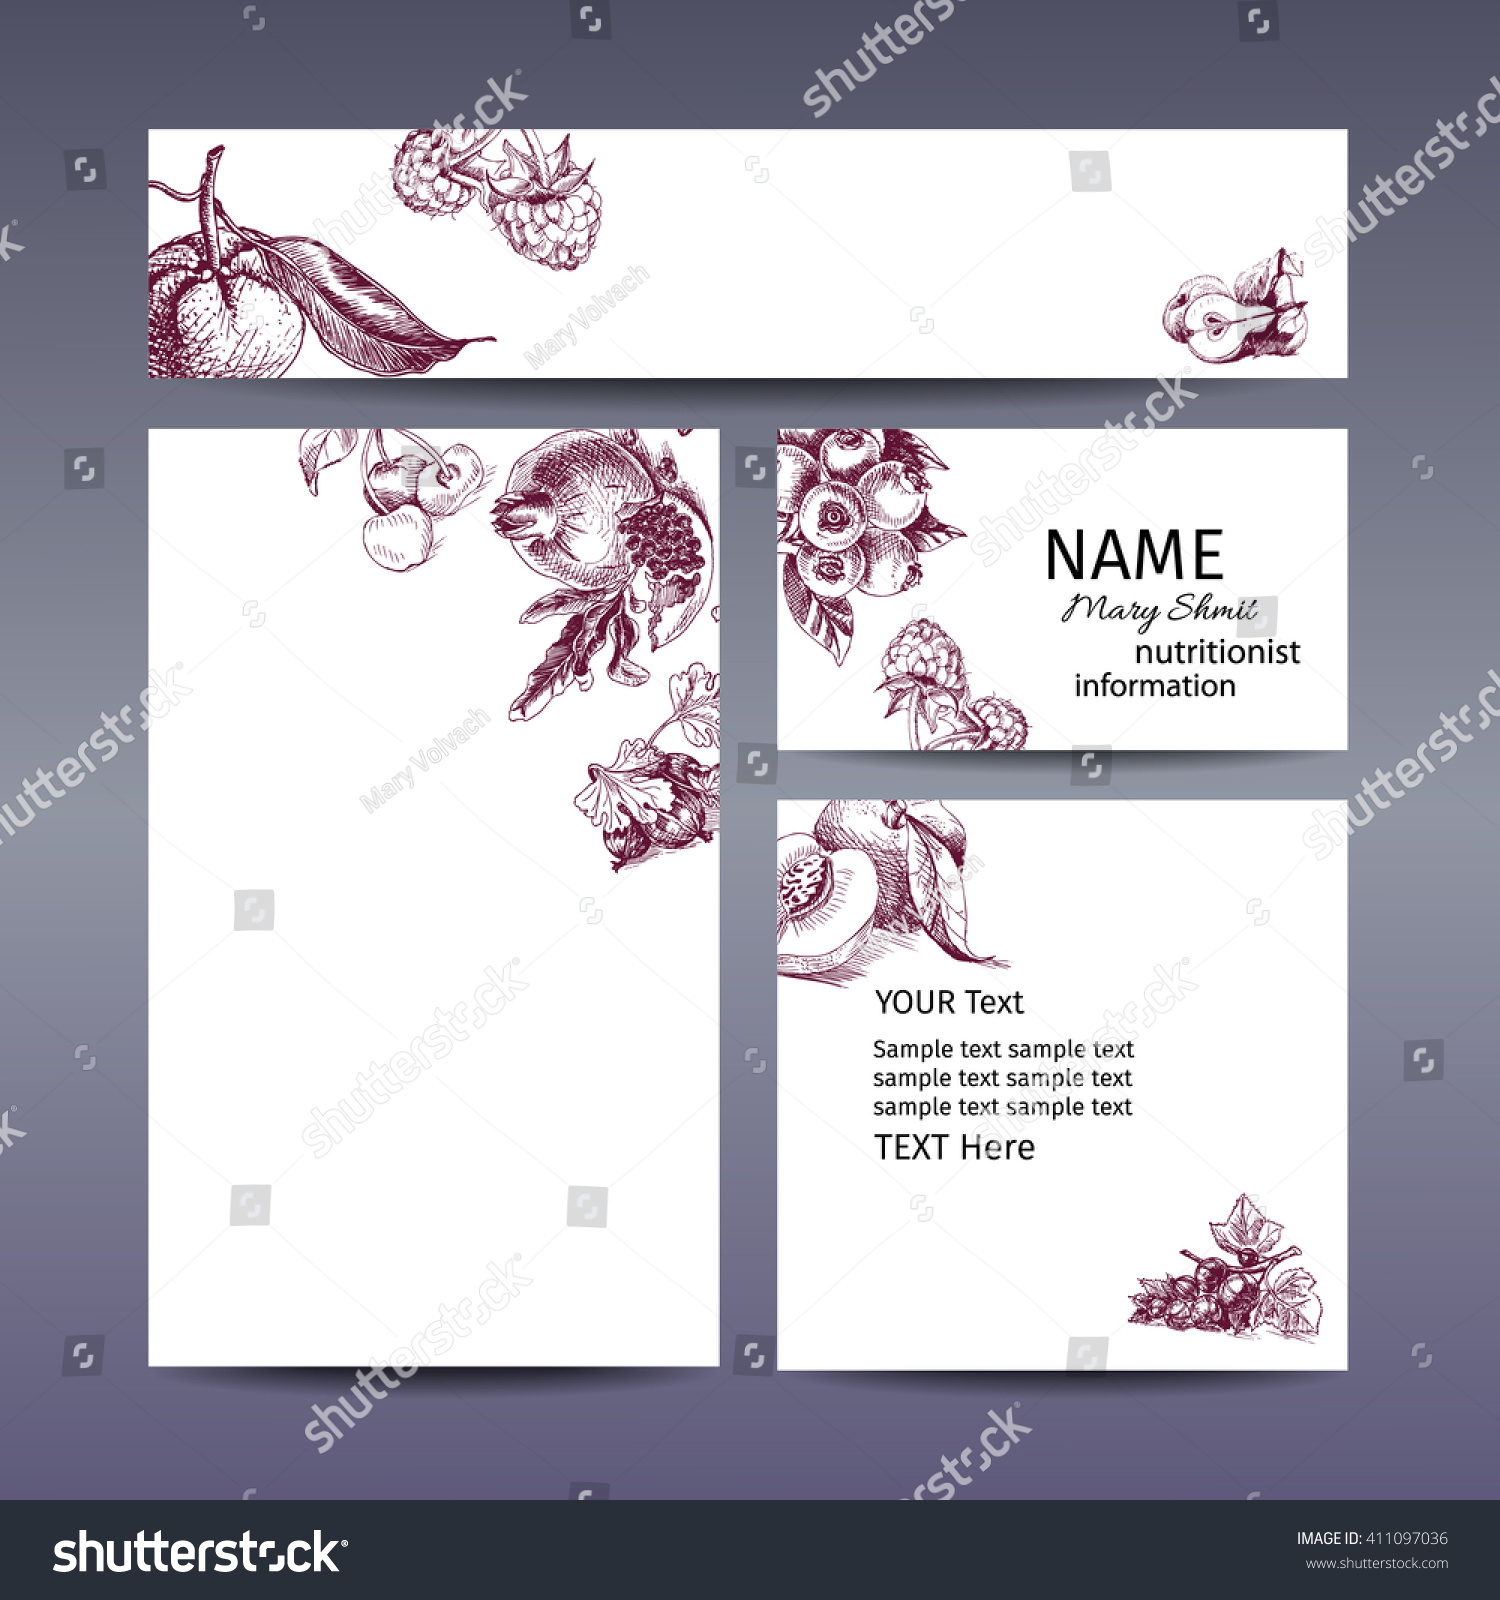 Business card website gallery free business cards corporate identity banner logo business card stock vector corporate identity banner logo business card website design magicingreecefo Choice Image